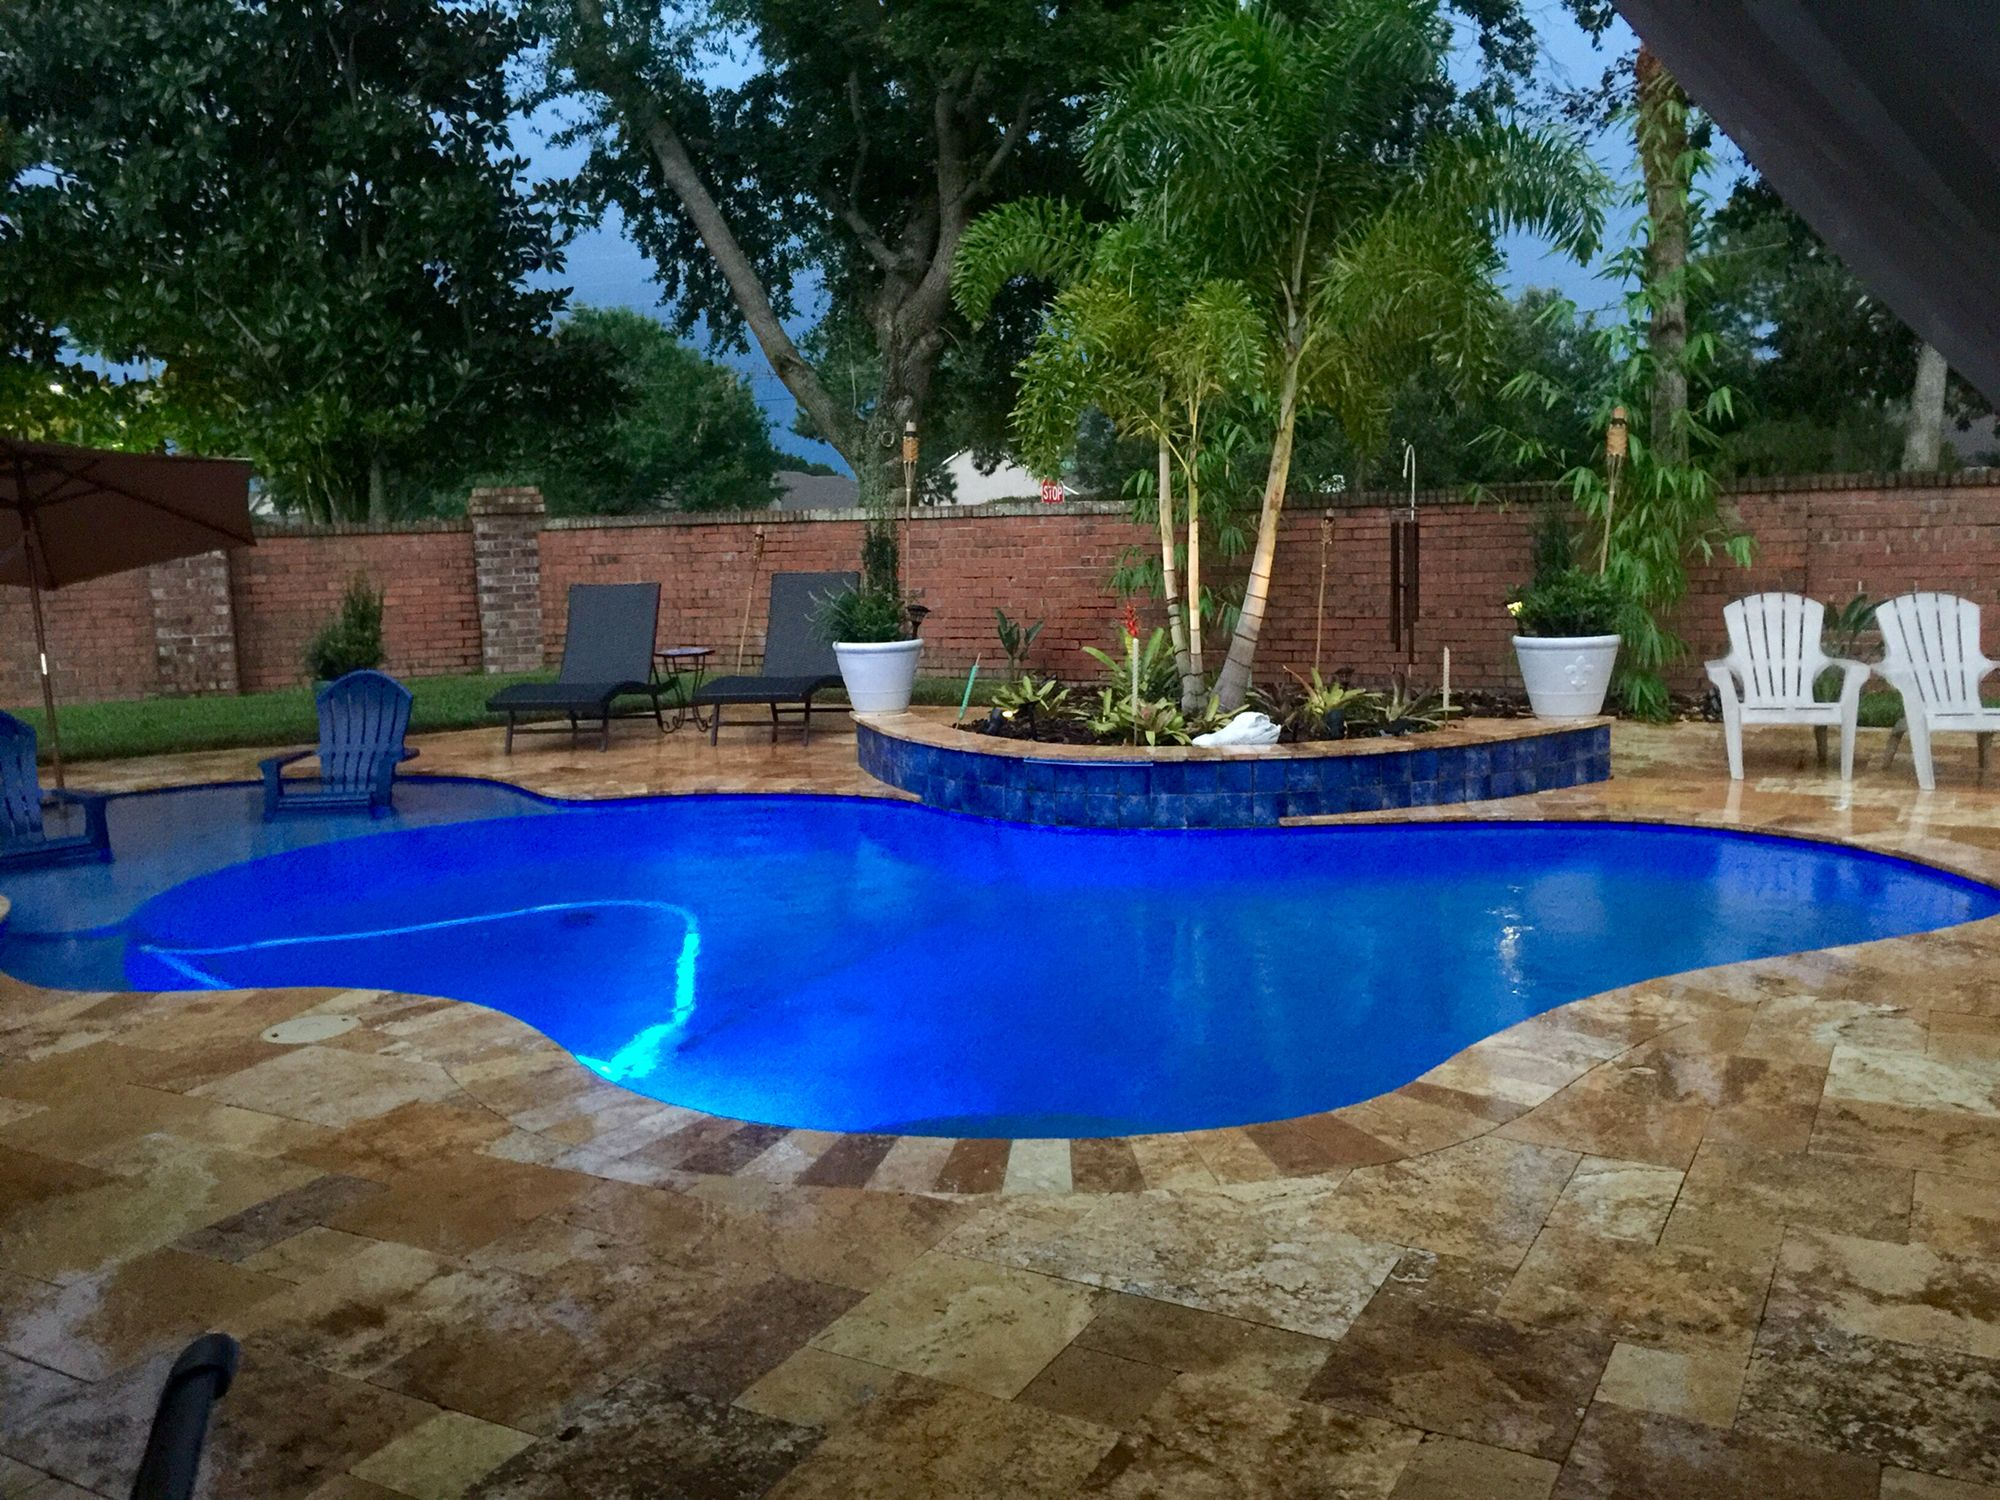 The Lagoon Pool I Designed And Love Travertine Tile Dark Blue Water Line Blue Lighting And During The Day The Bottom Of The Pool Blue Pool Pool Pool Lights